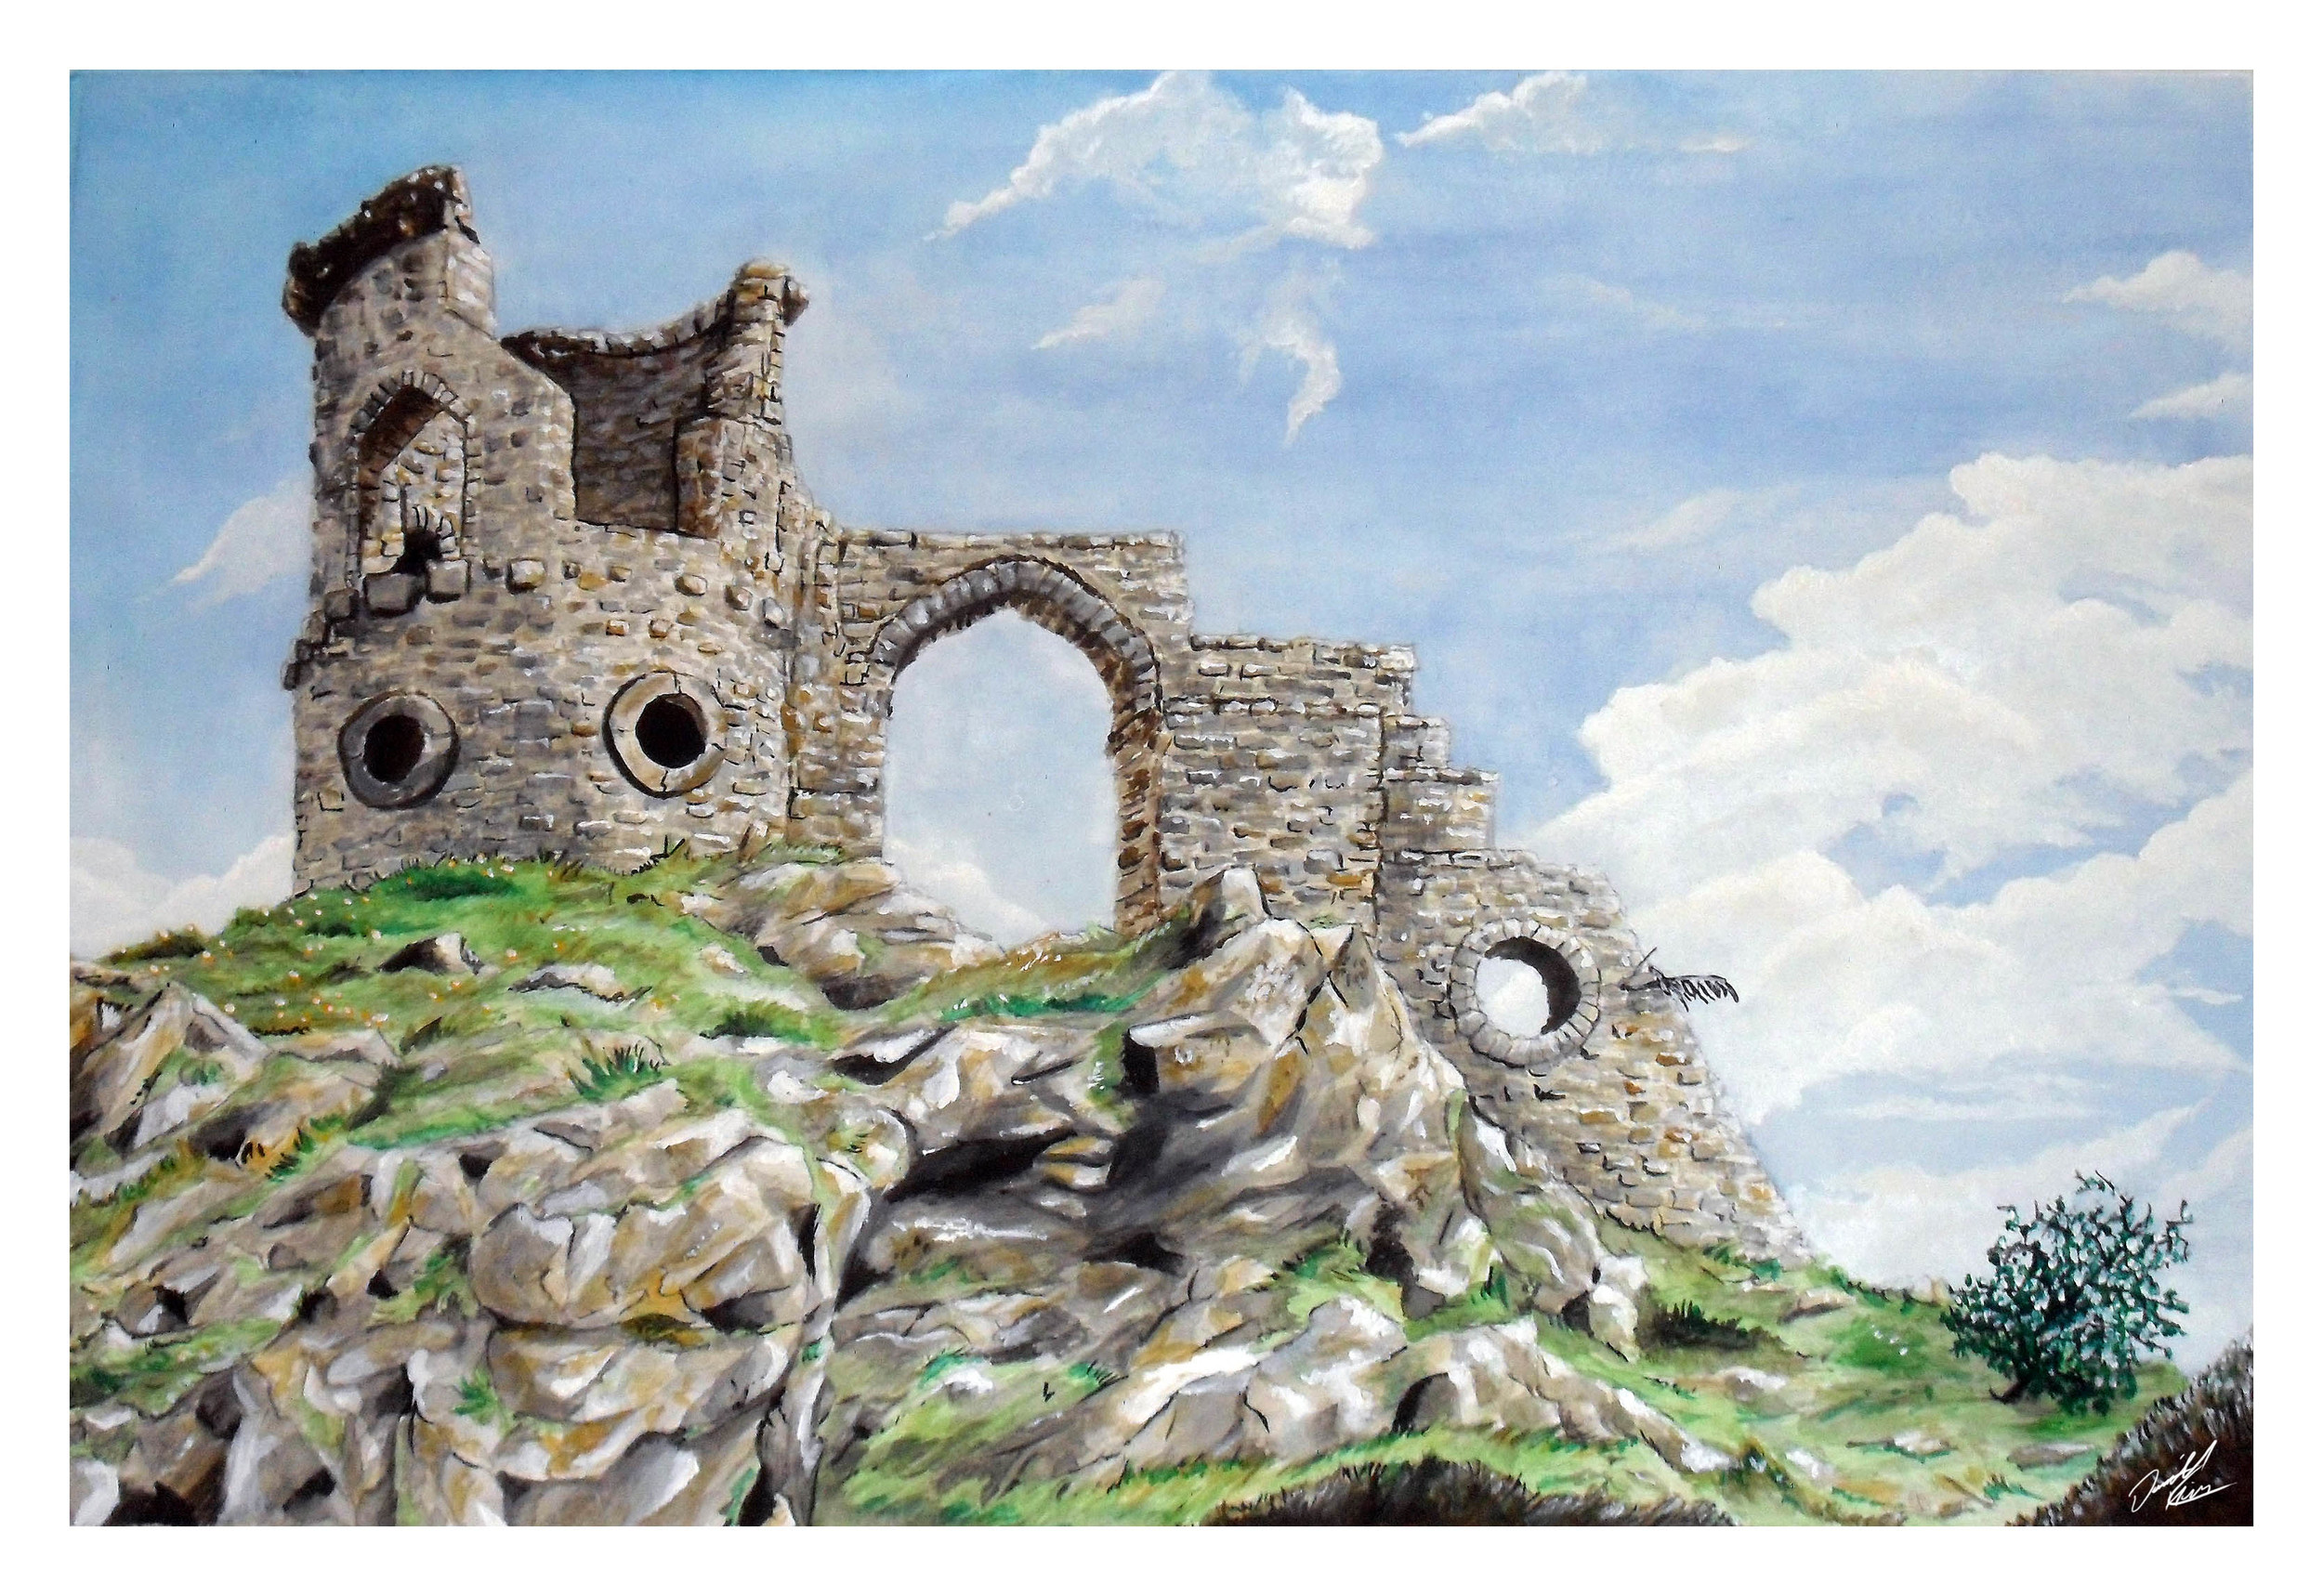 Watercolour commission that kicked off my foray back into painting again. Created for an old friend of the old castle ruin in our home village (prints available in my new store!)